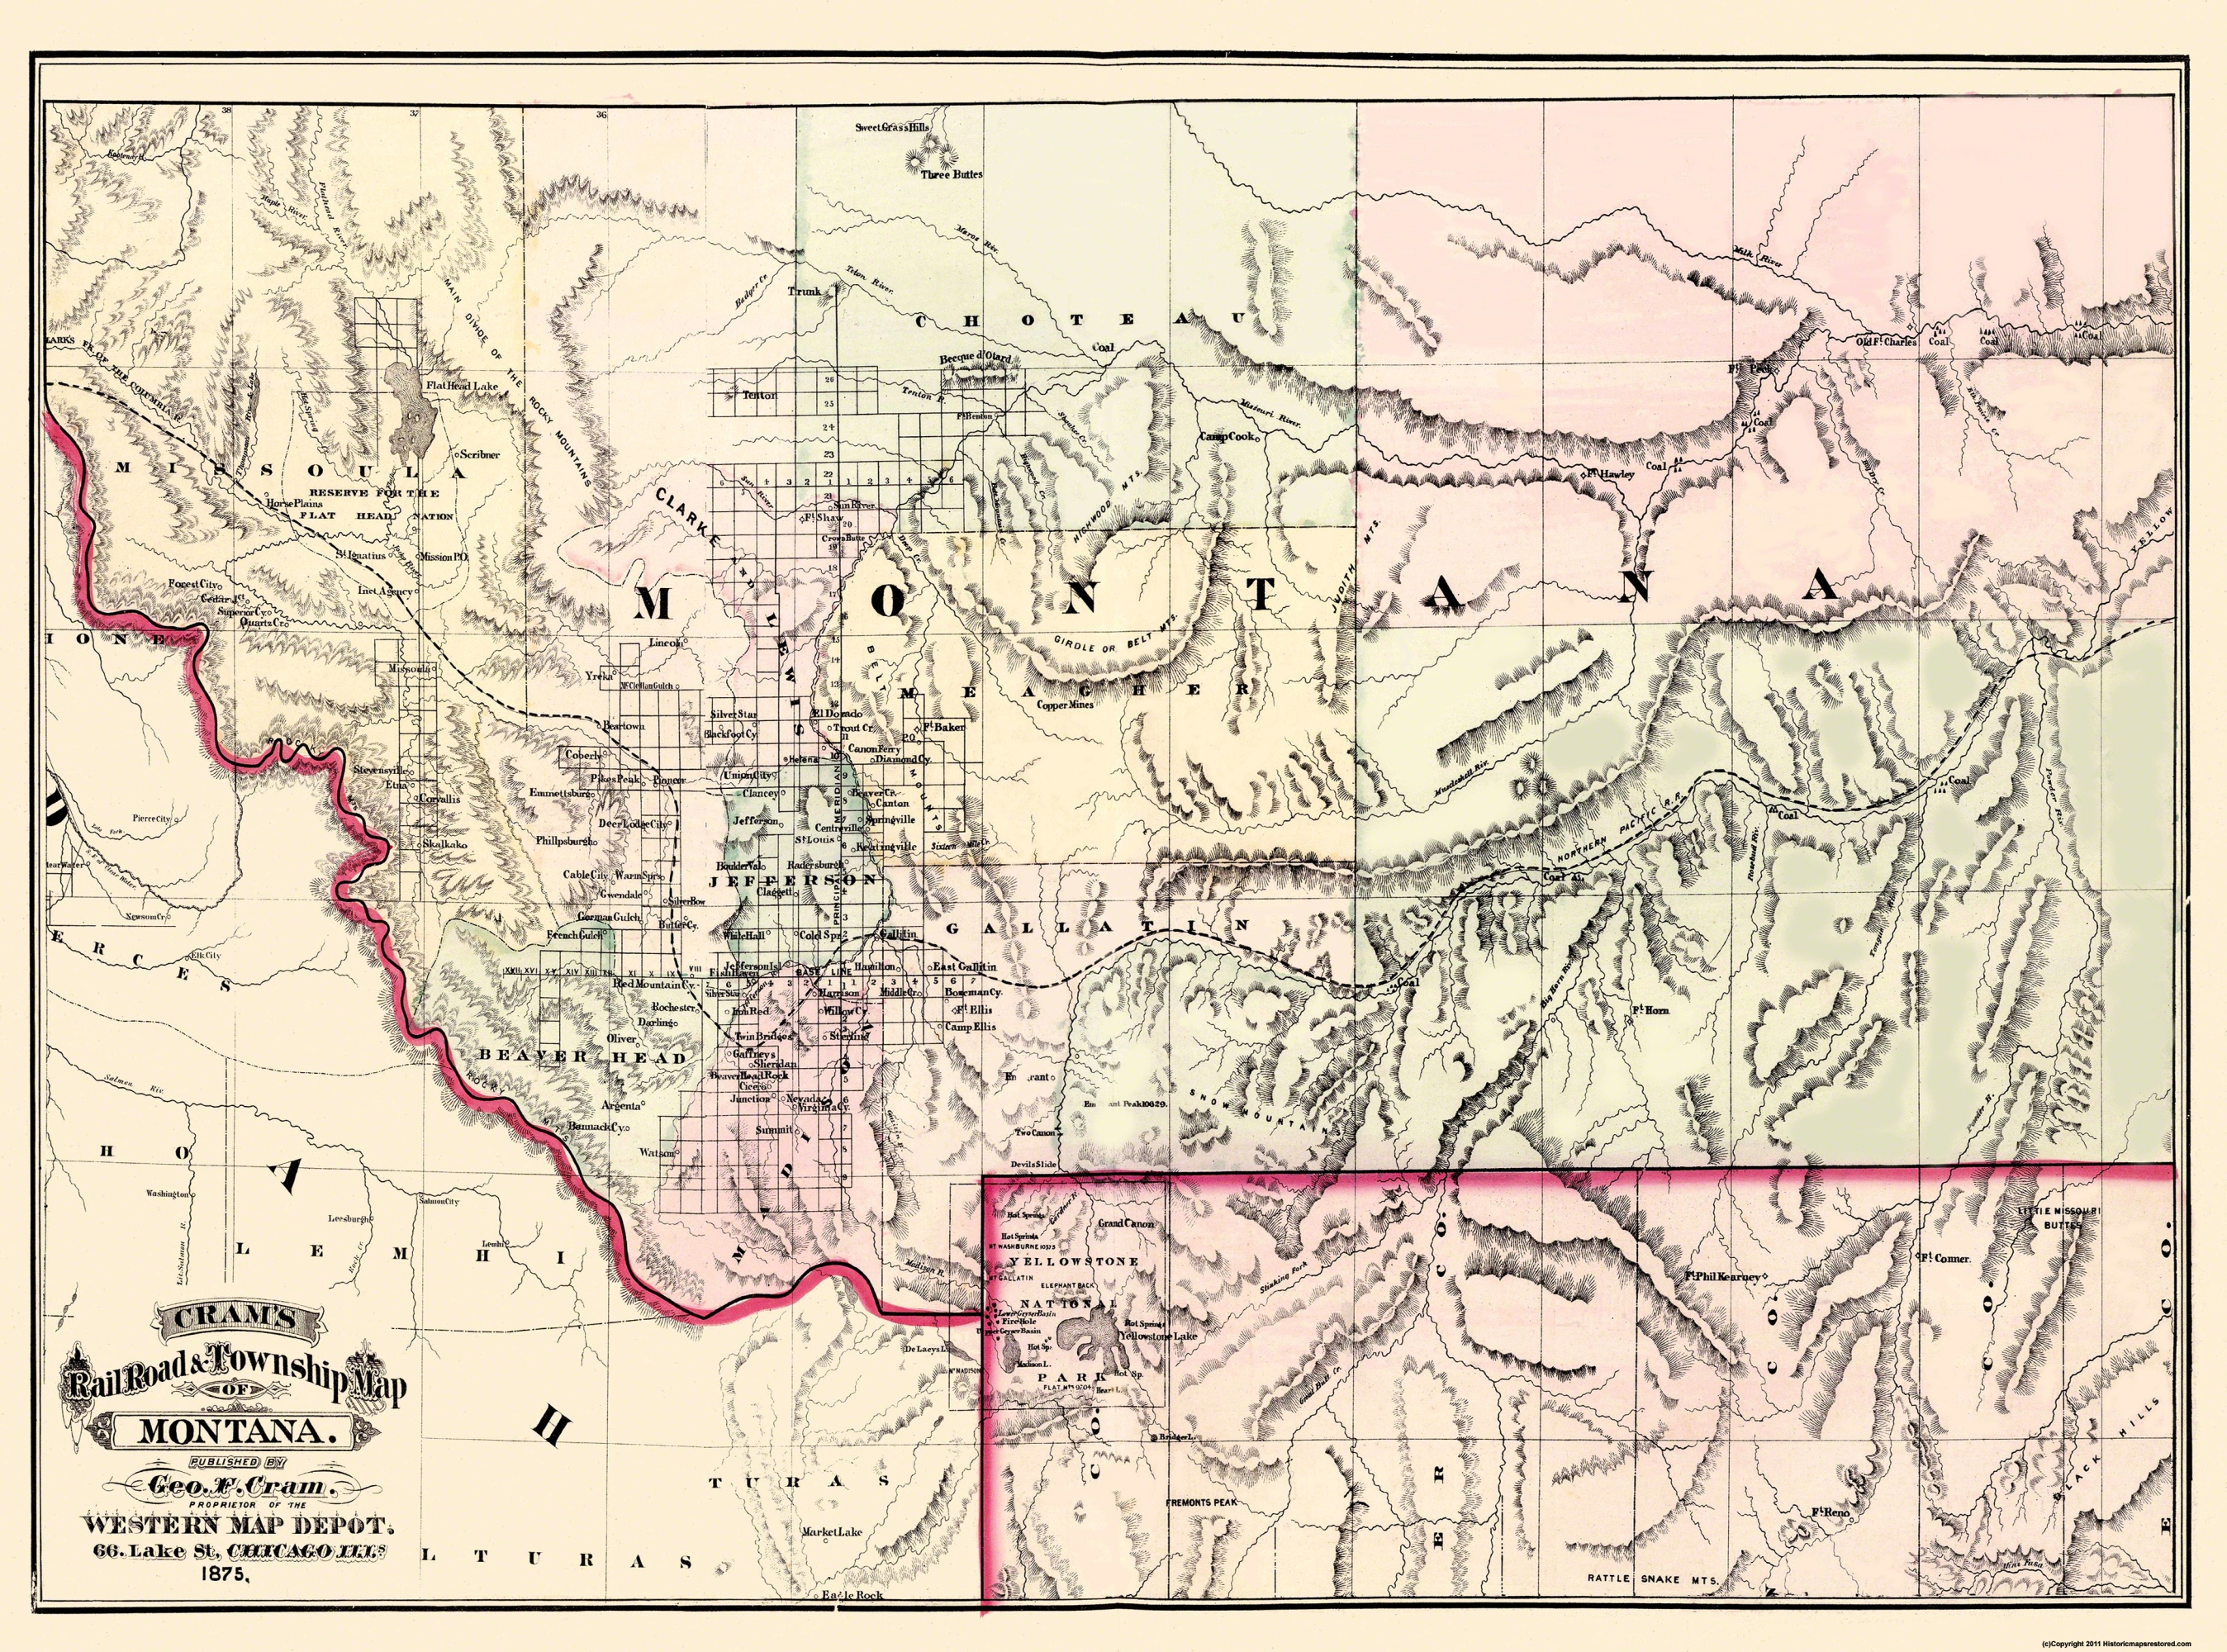 Old State Map Montana Territory Cram - Montana cities map